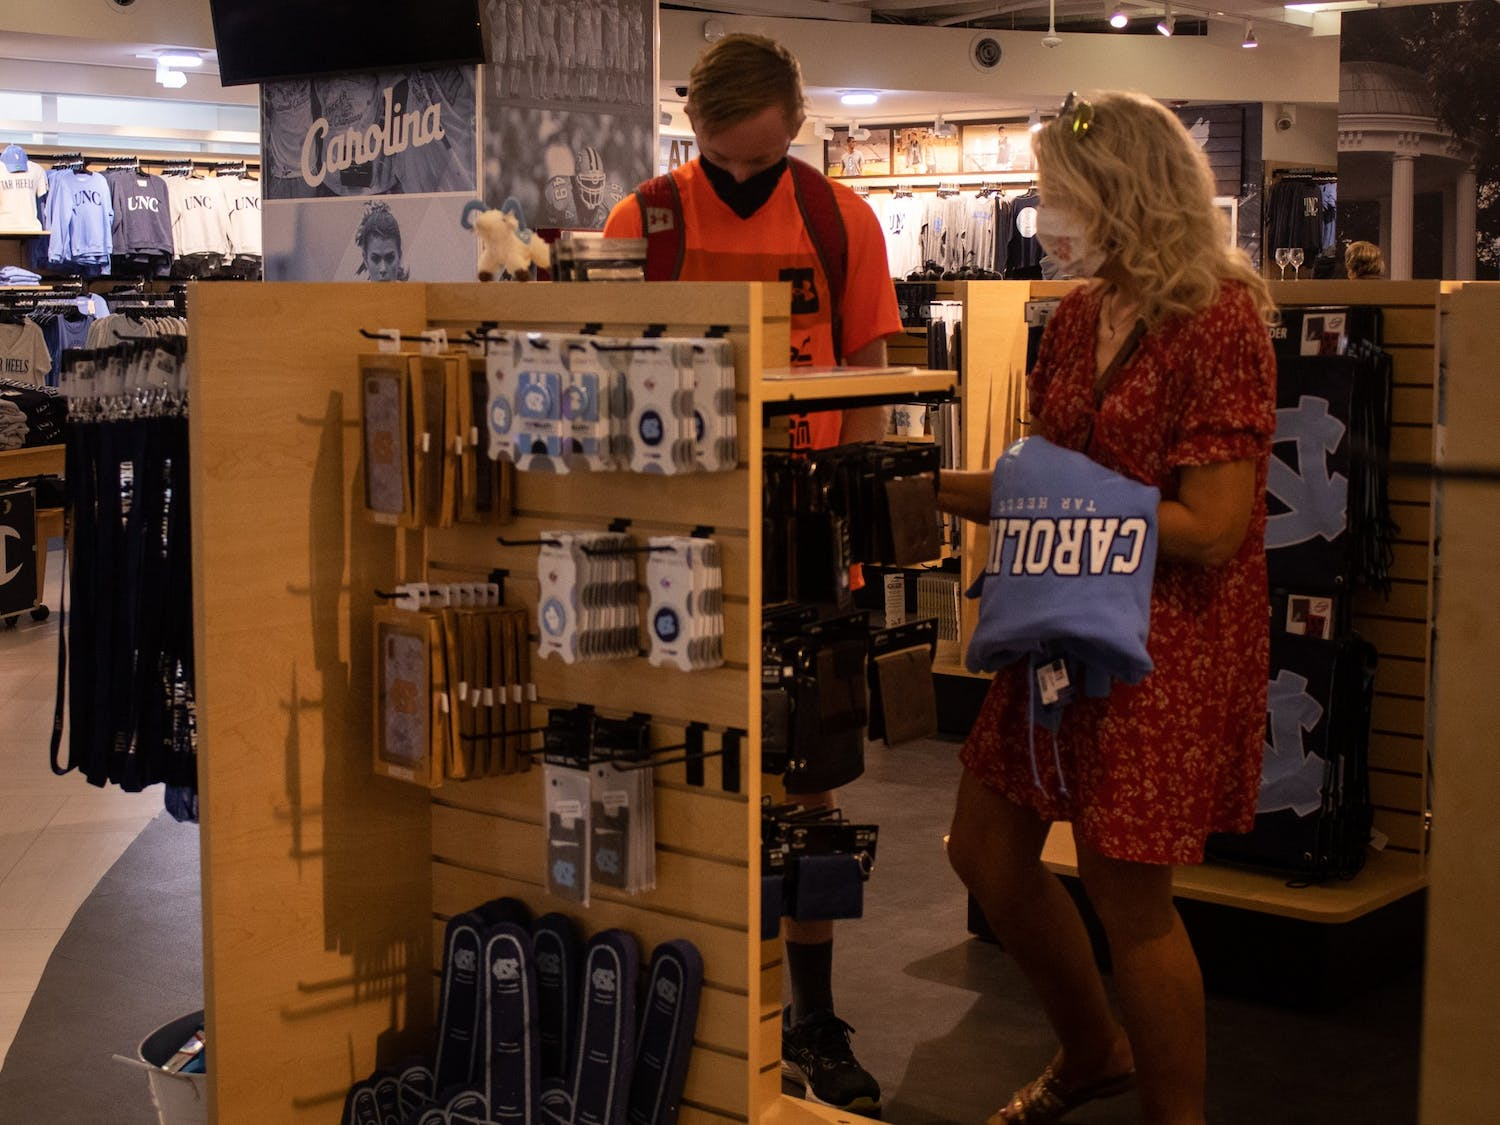 Prospective student Braden Holton and his mother Laura Holton from Pennsylvania shop for UNC gear at the UNC Student Stores on their trip to tour the University on Sept. 19.